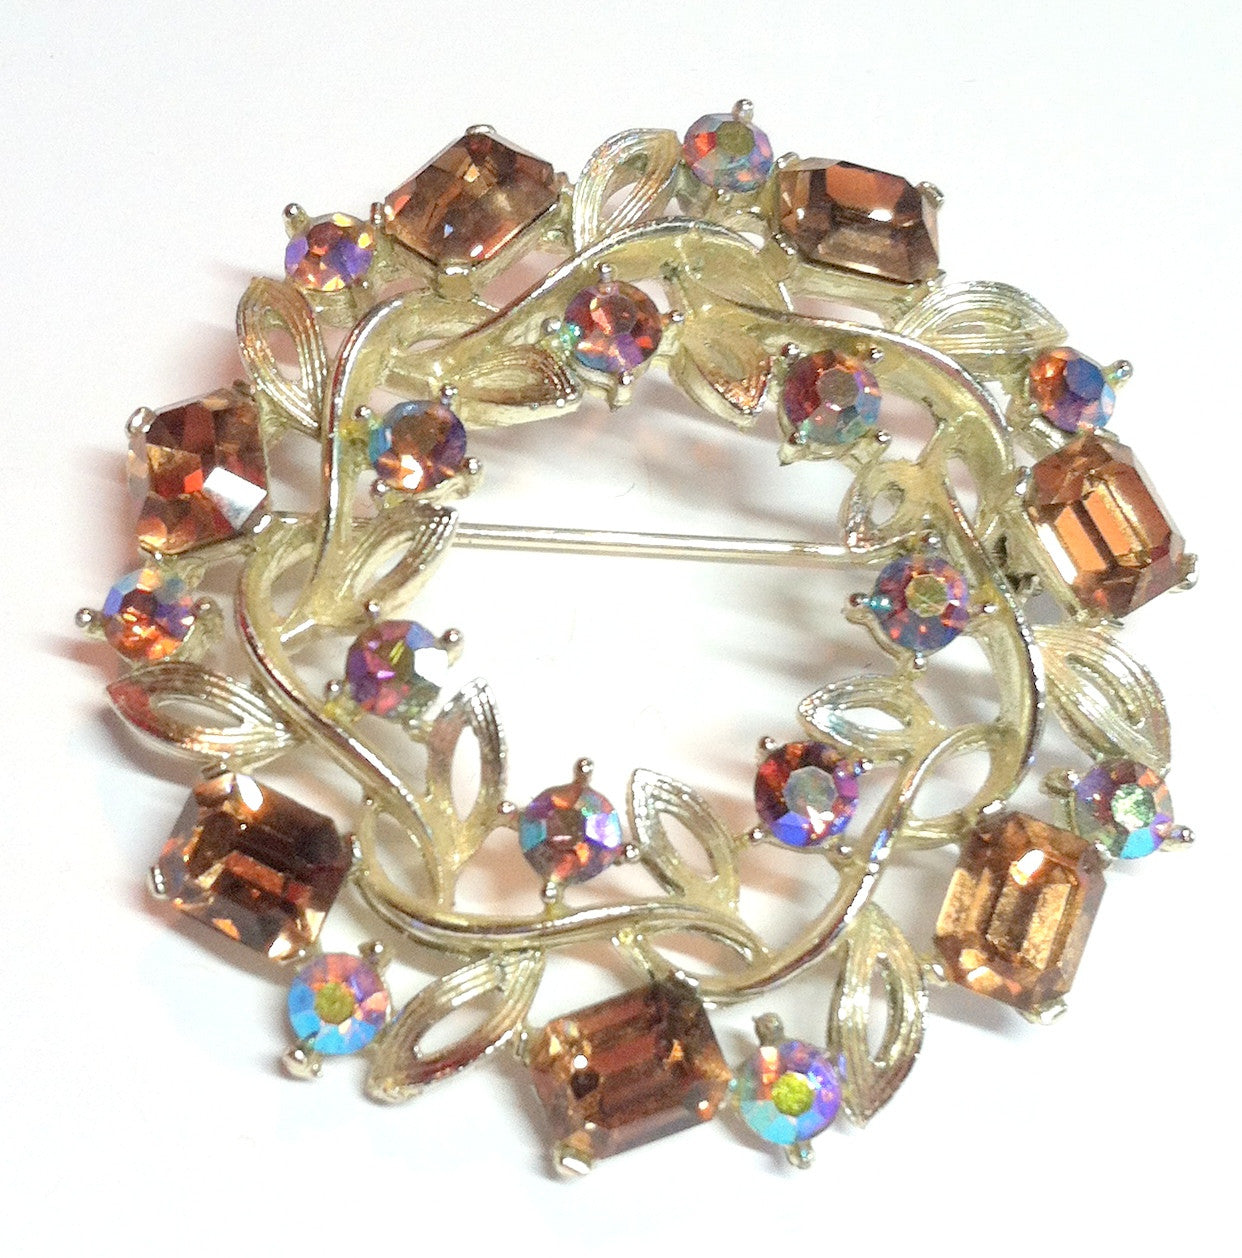 Wreath Shaped Brooch w/ Aurora Borealis Cystals circa 1960s Dorothea's Closet Vintage Jewelry